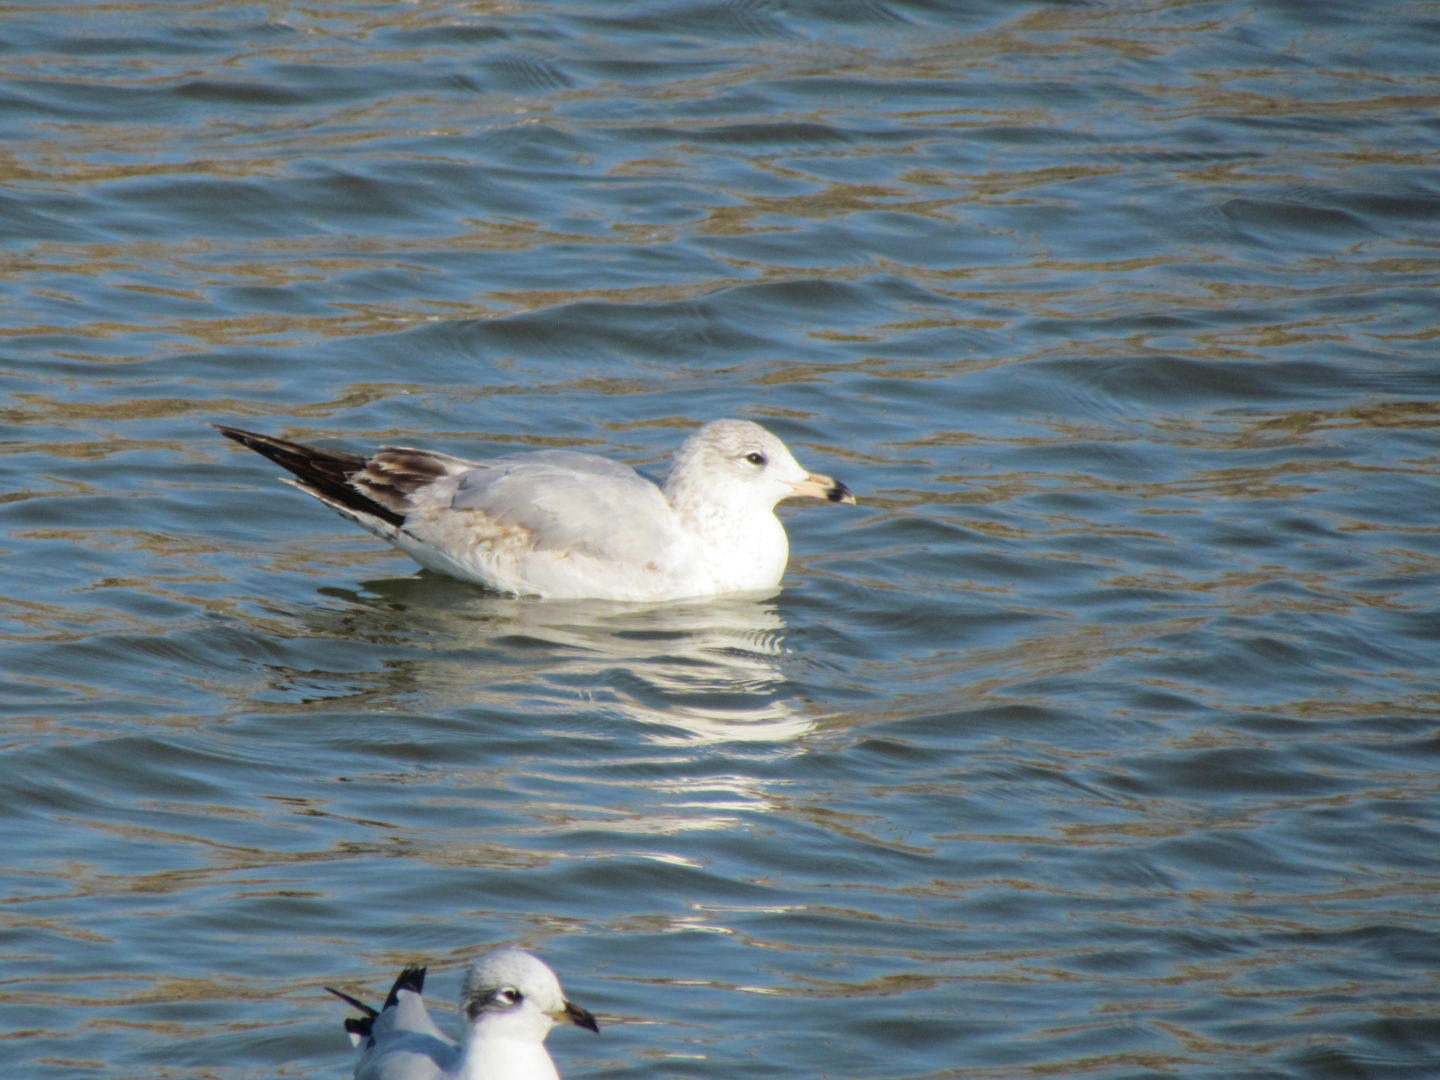 Gull on water